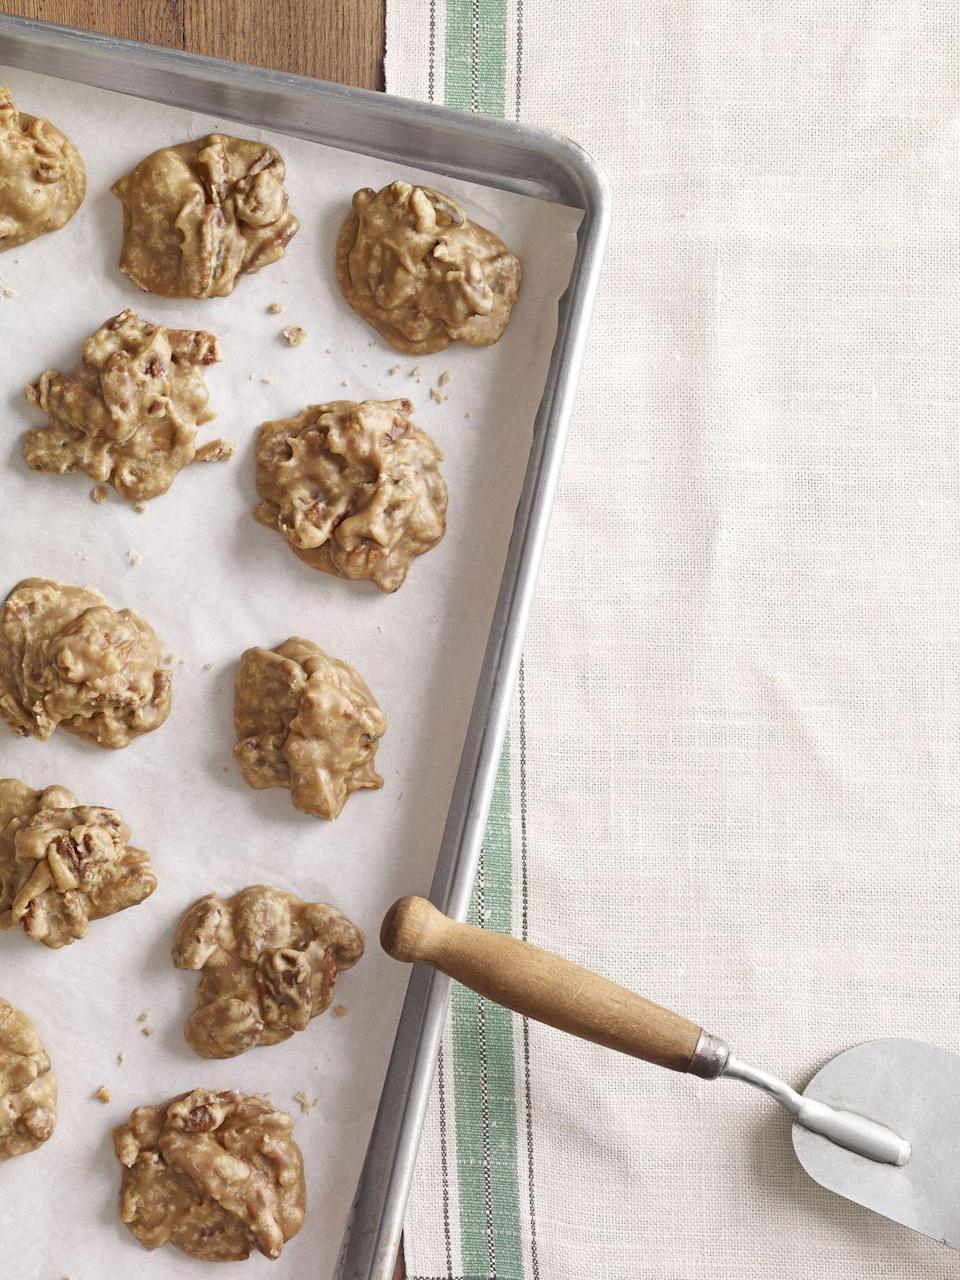 """<p>No Mardi Gras fete's menu would be complete without a pecan-filled treat, and these pralines hit the spot after a spicy meal.</p><p><em><a href=""""https://www.goodhousekeeping.com/food-recipes/a10567/pecan-pralines-recipe-clv0212/"""" rel=""""nofollow noopener"""" target=""""_blank"""" data-ylk=""""slk:Get the recipe for Pecan Pralines »"""" class=""""link rapid-noclick-resp"""">Get the recipe for Pecan Pralines »</a></em></p>"""